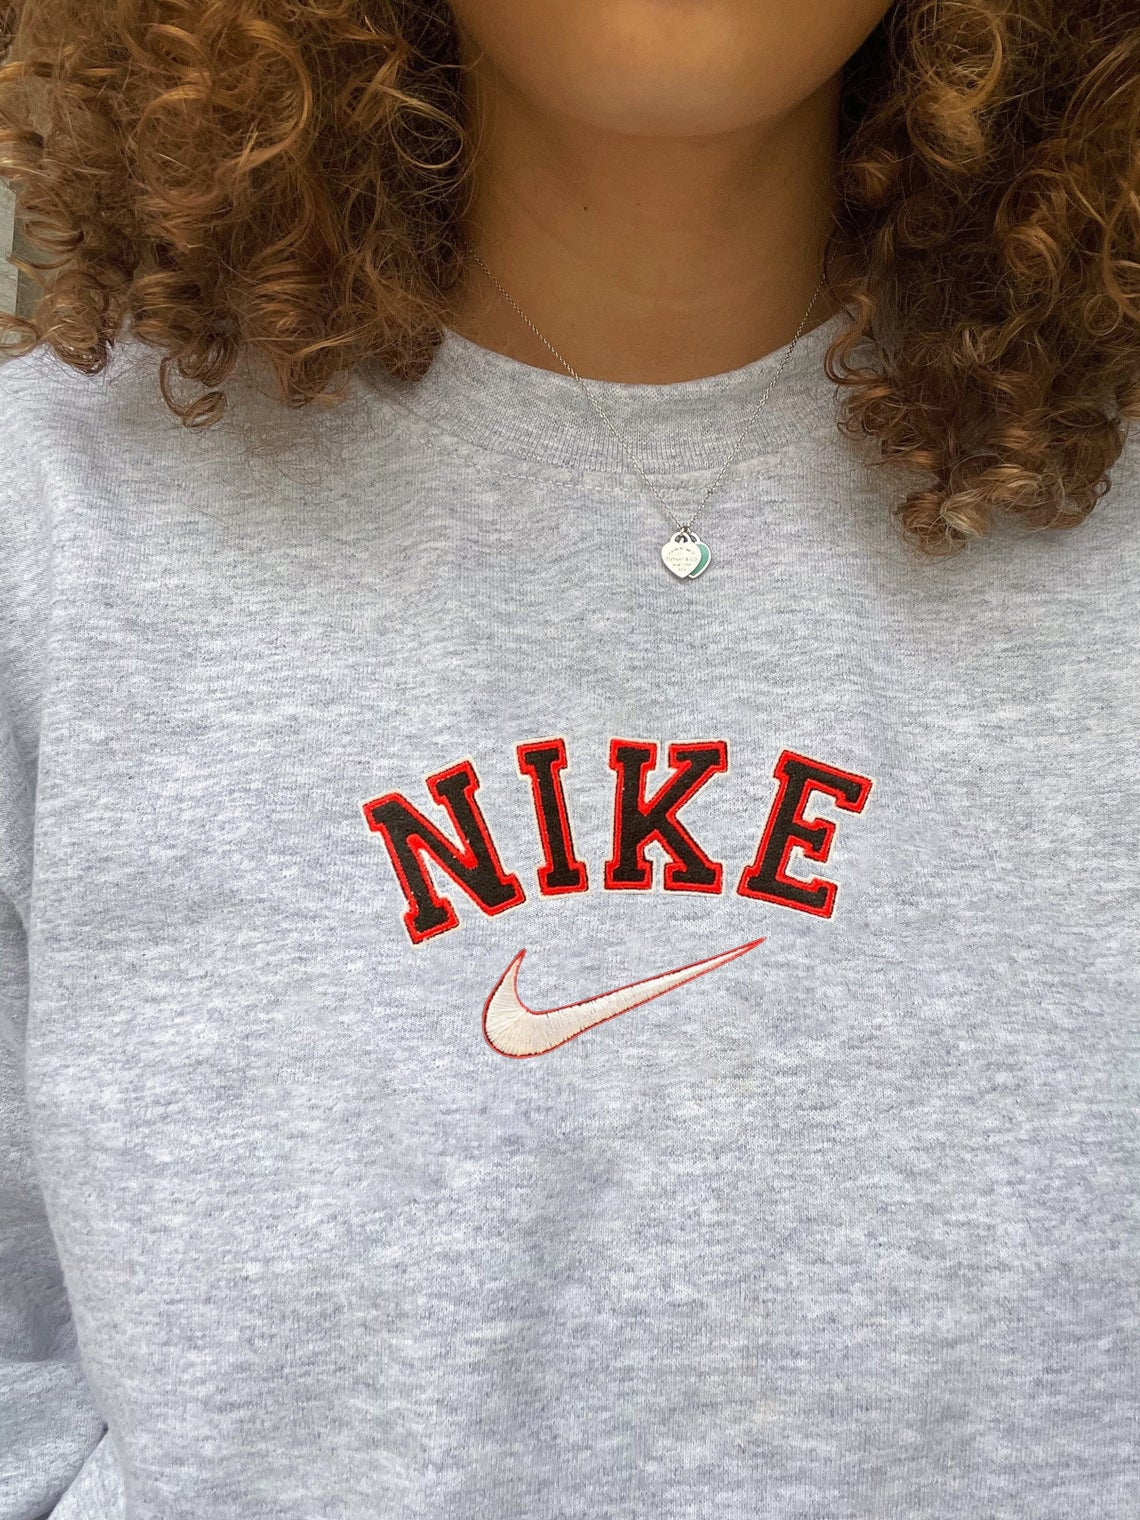 Nike 90s Vintage Spellout Embroidered Swoosh Sweatshirt/t-shirt/hoodie Embroidery